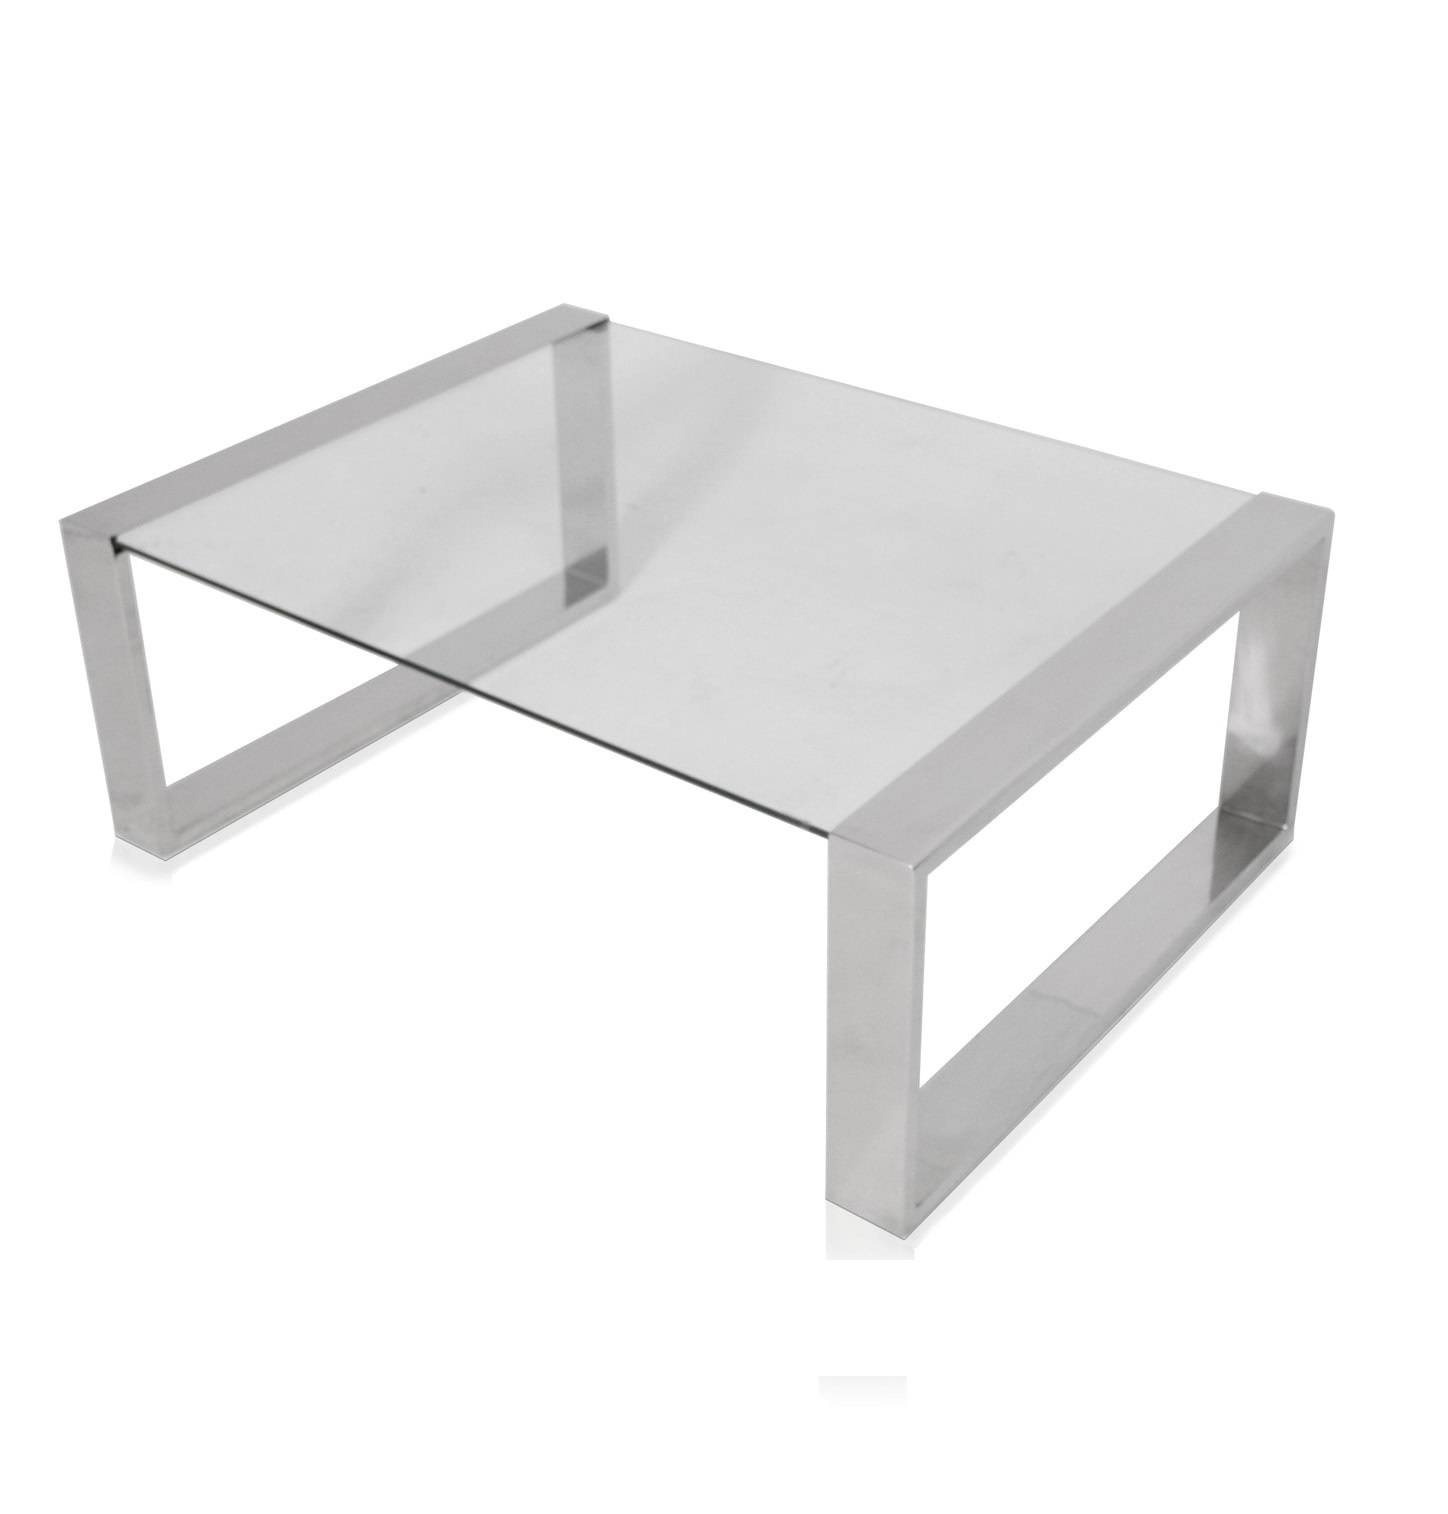 Coffee Table: Astonishing Chrome And Glass Coffee Table Ikea throughout Modern Chrome Coffee Tables (Image 7 of 30)